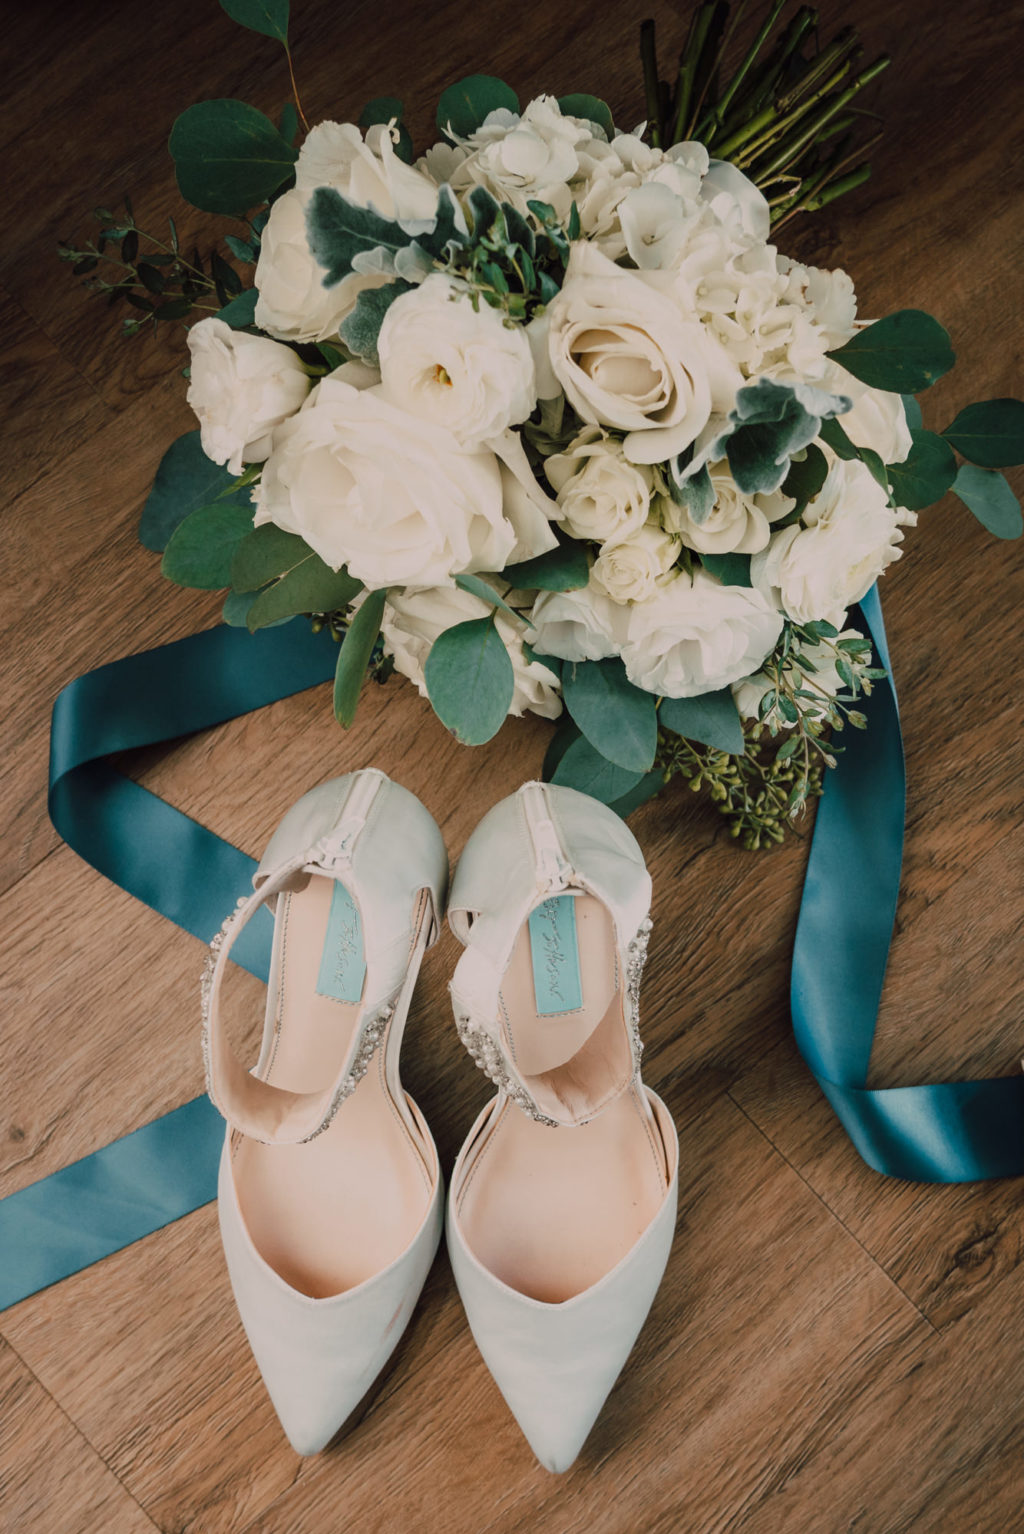 tampa wedding bouquet with white roses and eucalyptus greenery with betsey johnson designer bridal heels shoes